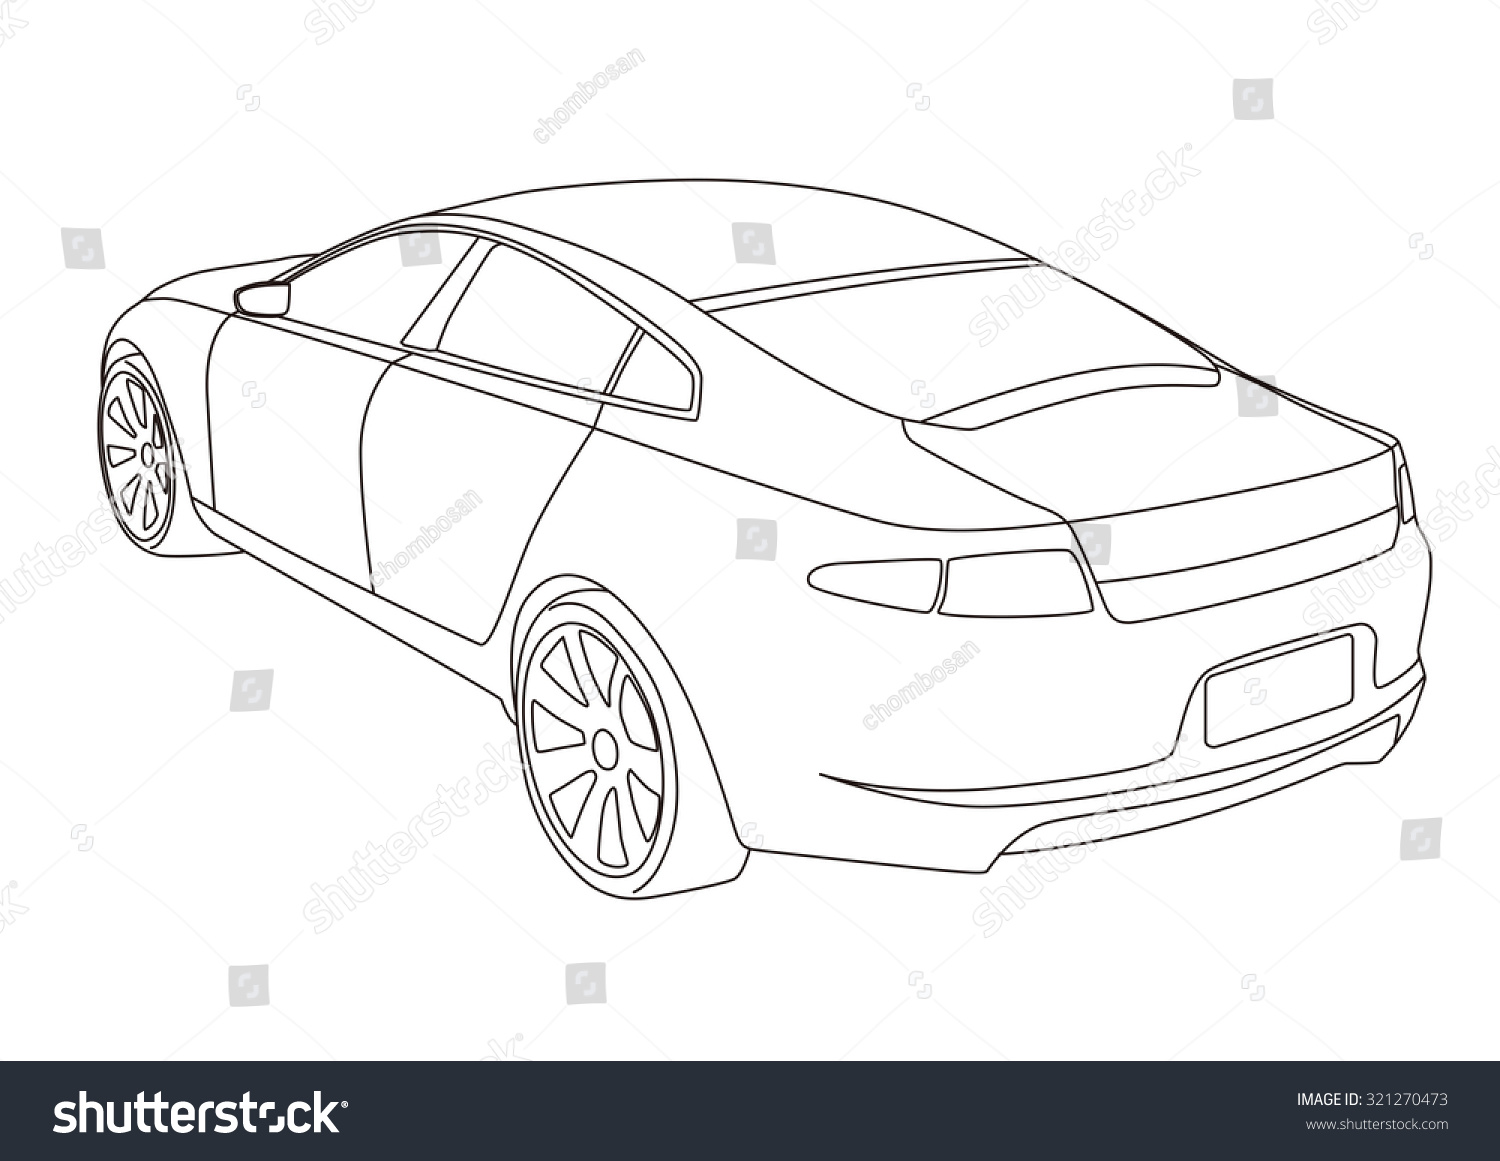 Line Drawing Vehicles : Line drawing car illustration vectores en stock